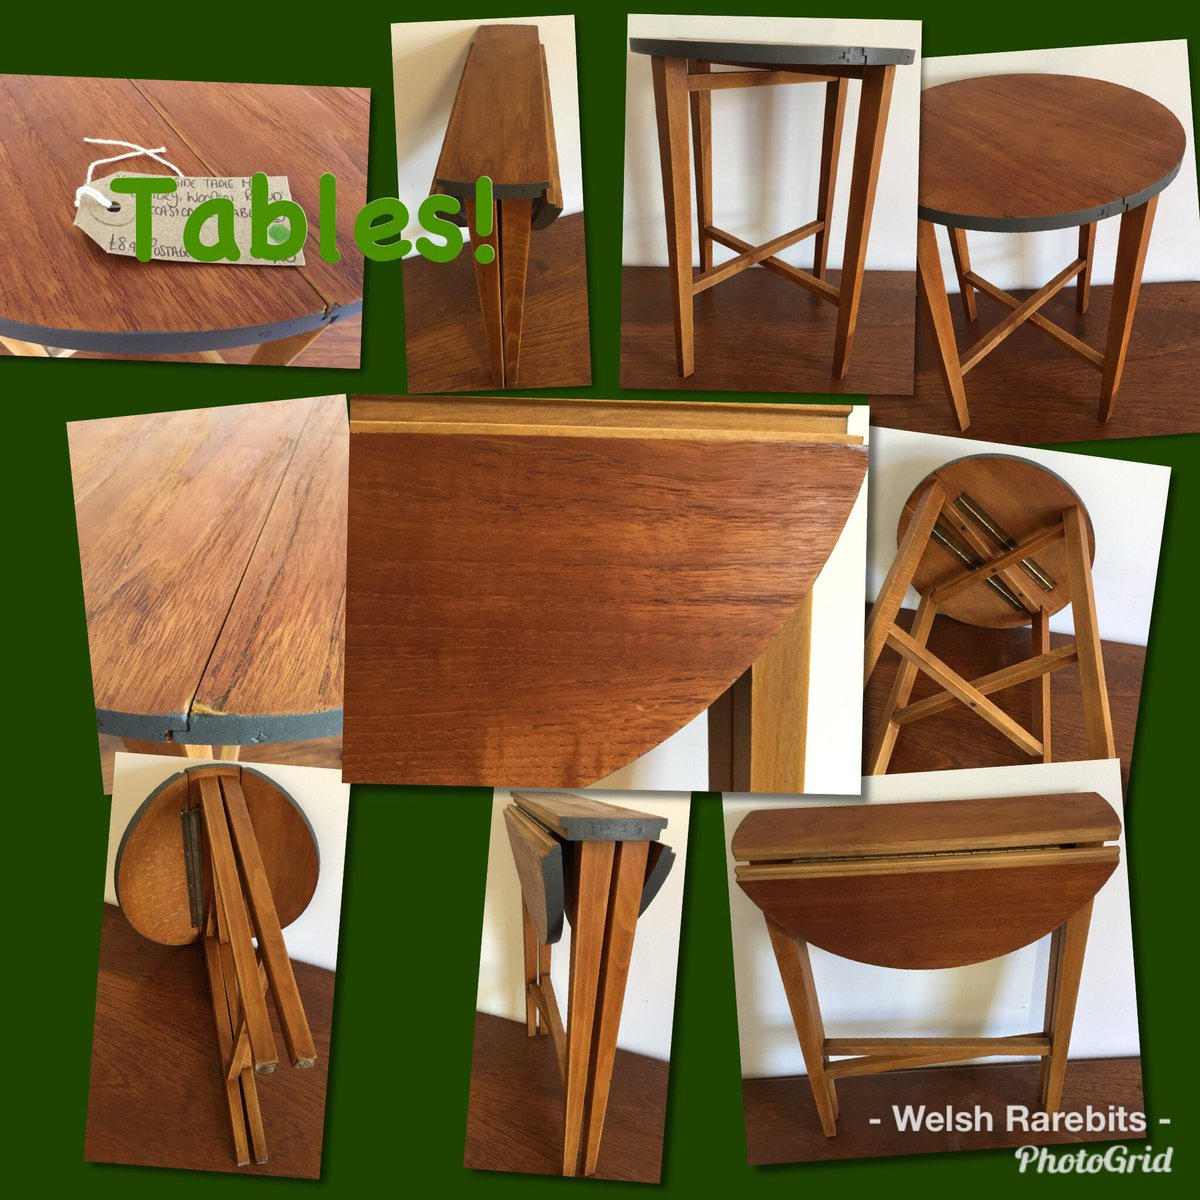 Welsh Rarebits By Annabelle On Twitter Online Ebay Shop At Https T Co J7xxpyo0ek Or Visit Our Website At Https T Co Osxbo0peco Tins Teacaddy Coalscuttle Brasscoalbucket Table Midcentury Foldingtable Greytable Vintage Antique Furniture